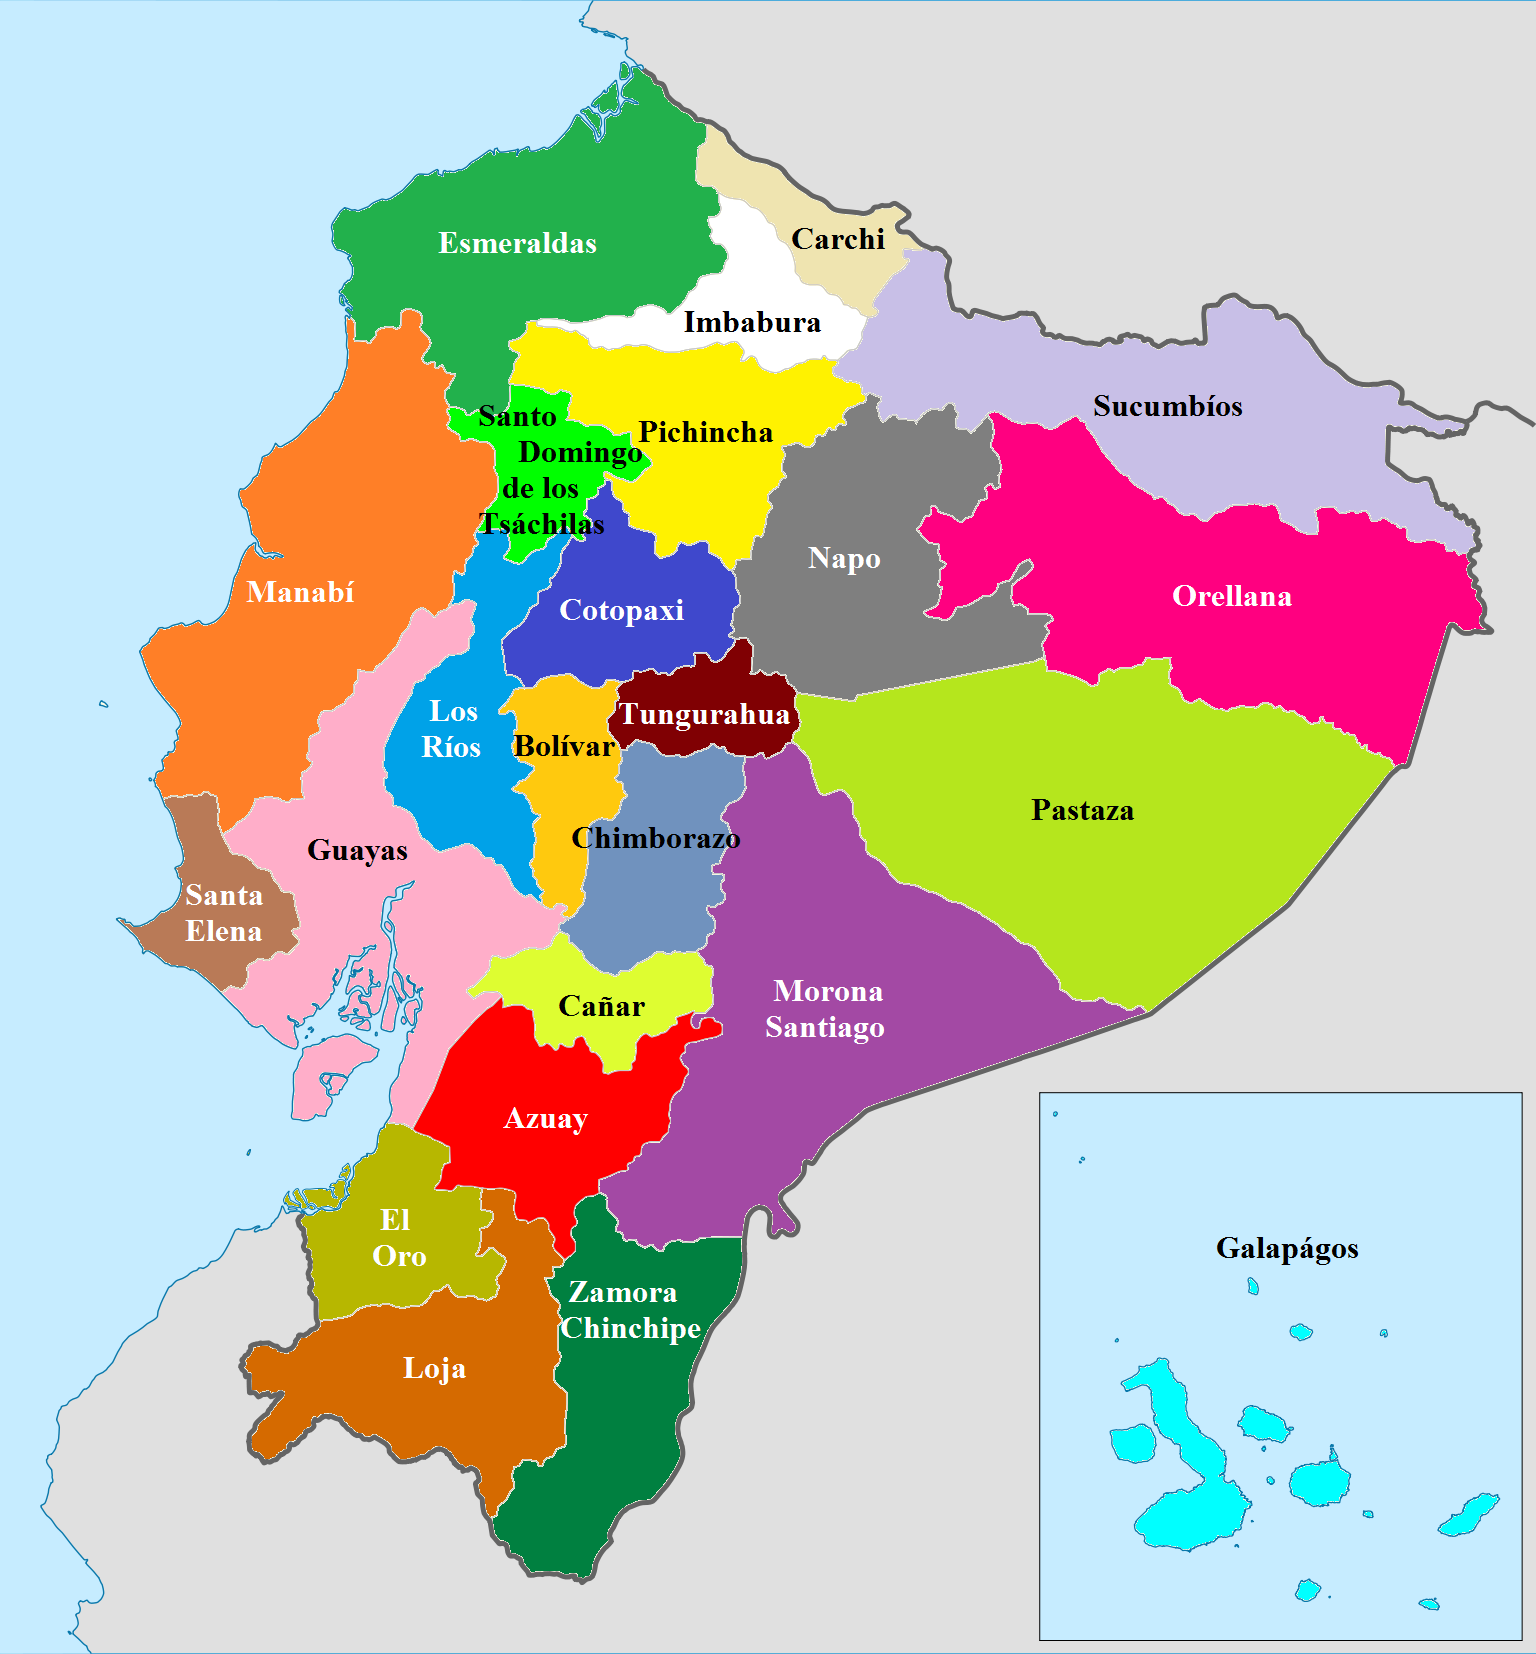 Ecuador Is Country In South America The Capital Of Ecuador Is - Capital of ecuador